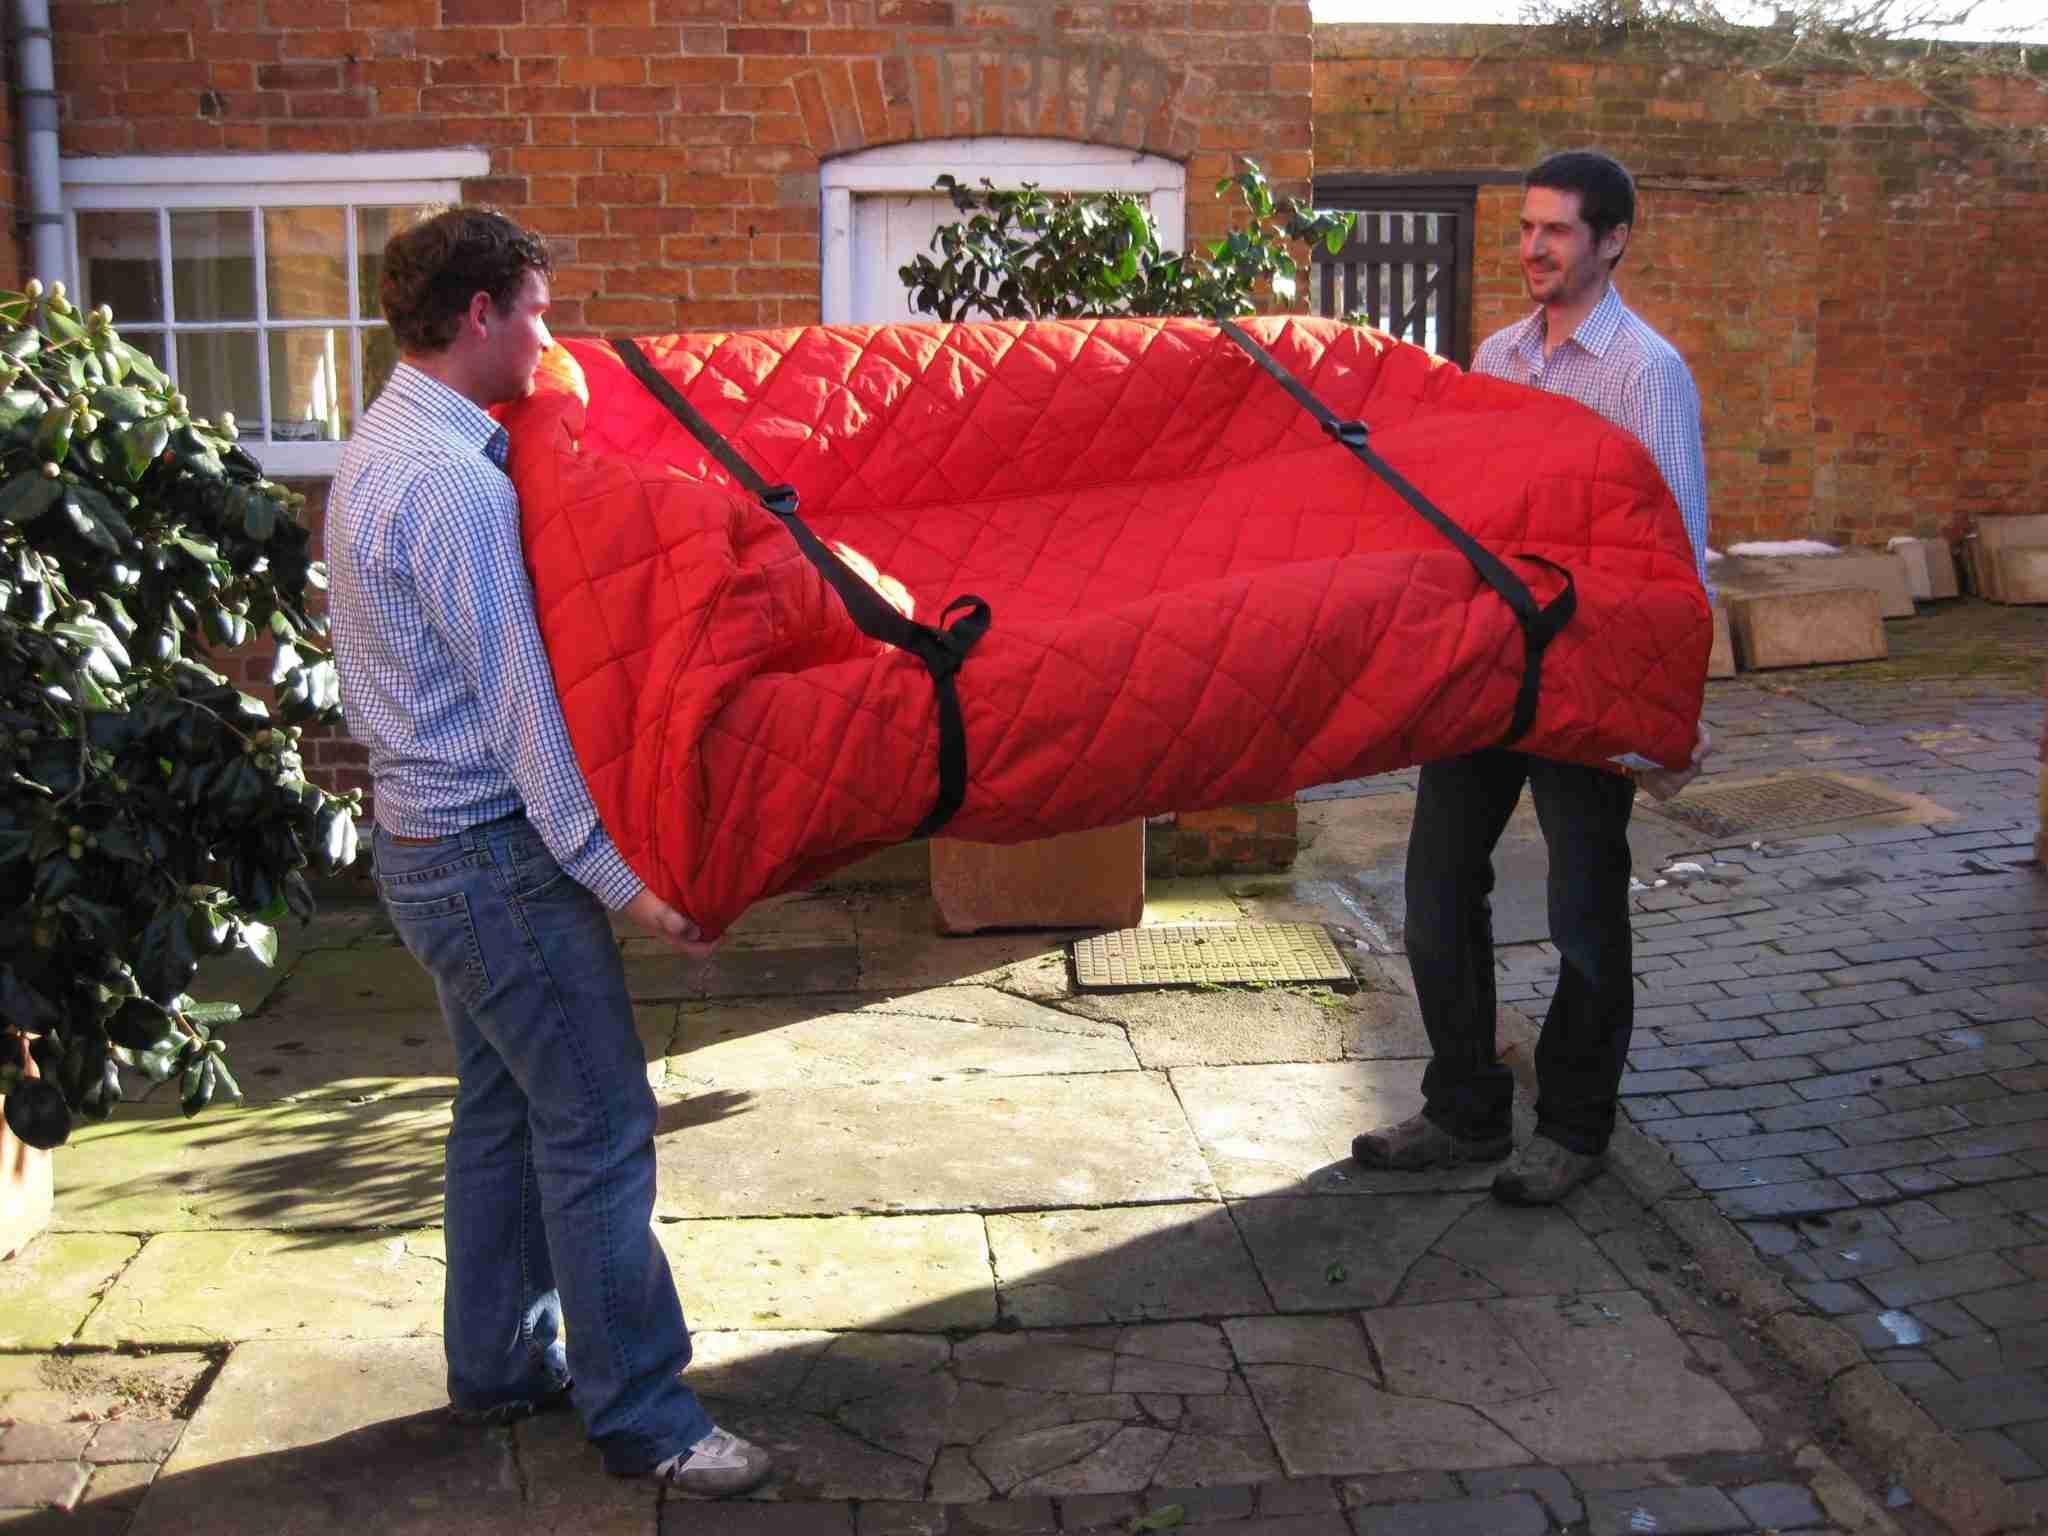 Carrying sofa with a furniture protection cover